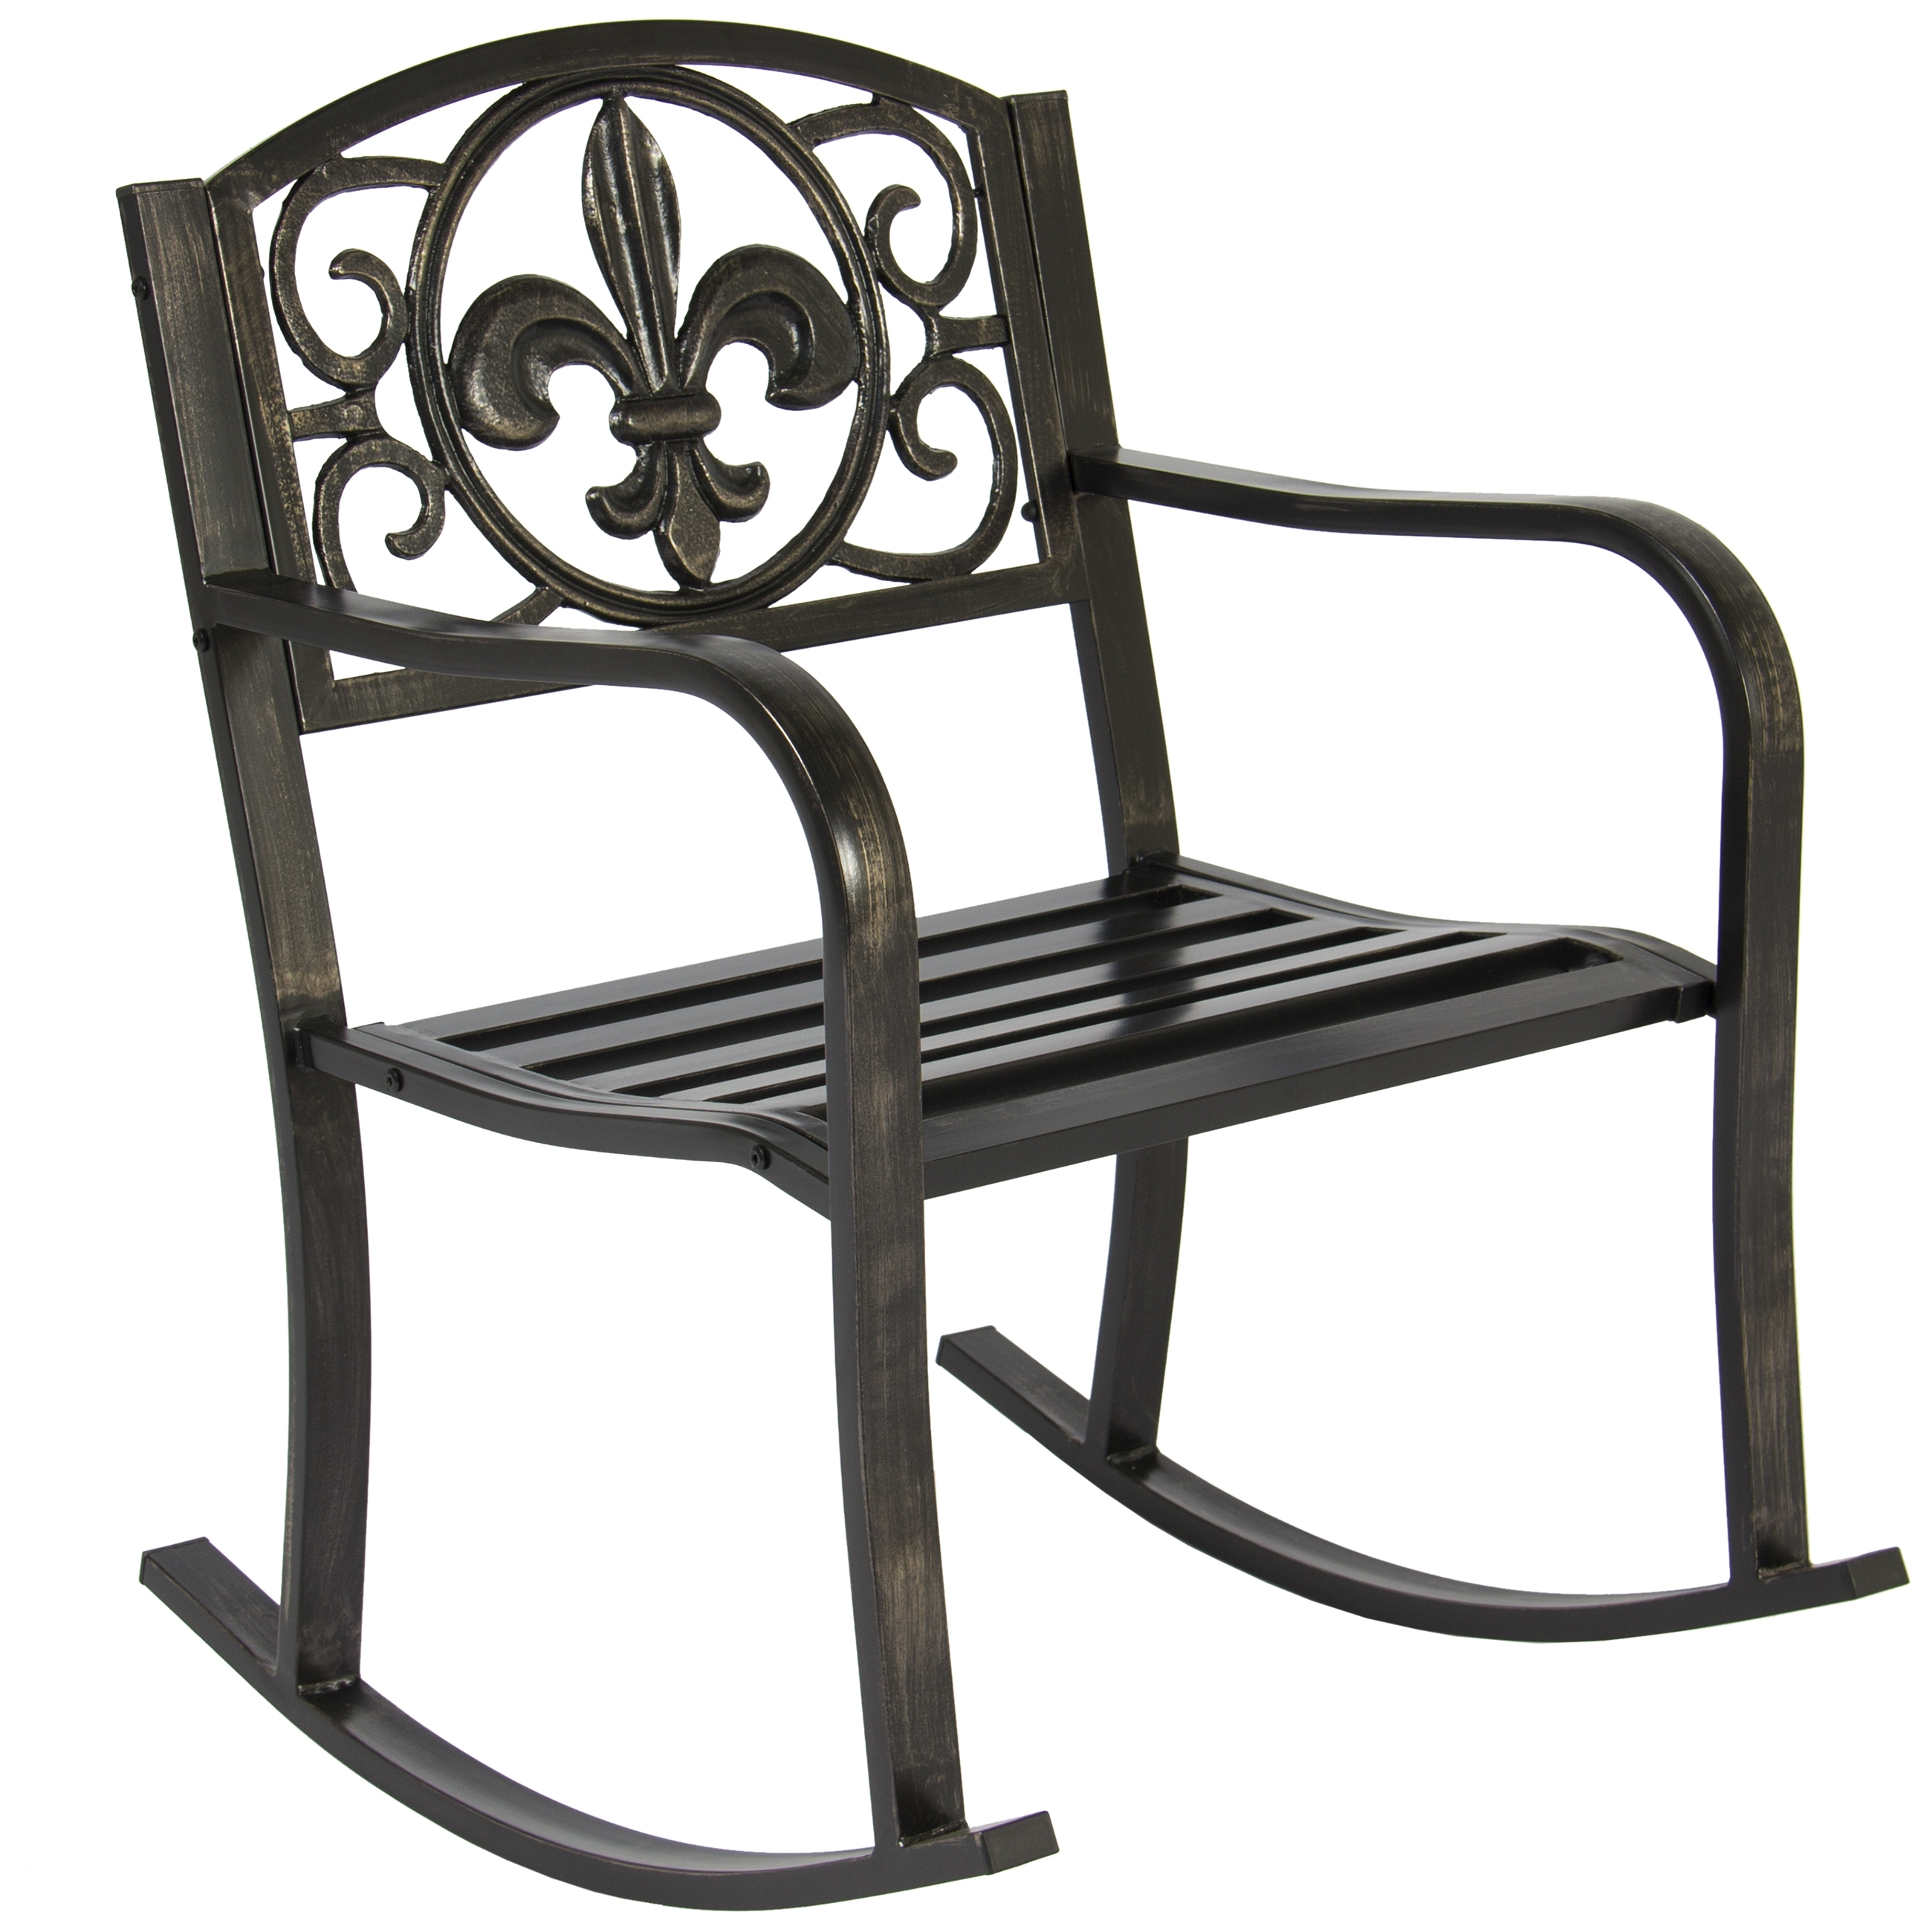 Best Choice Products Metal Rocking Chair Seat For Patio, Porch, Deck Pertaining To Walmart Rocking Chairs (#4 of 15)